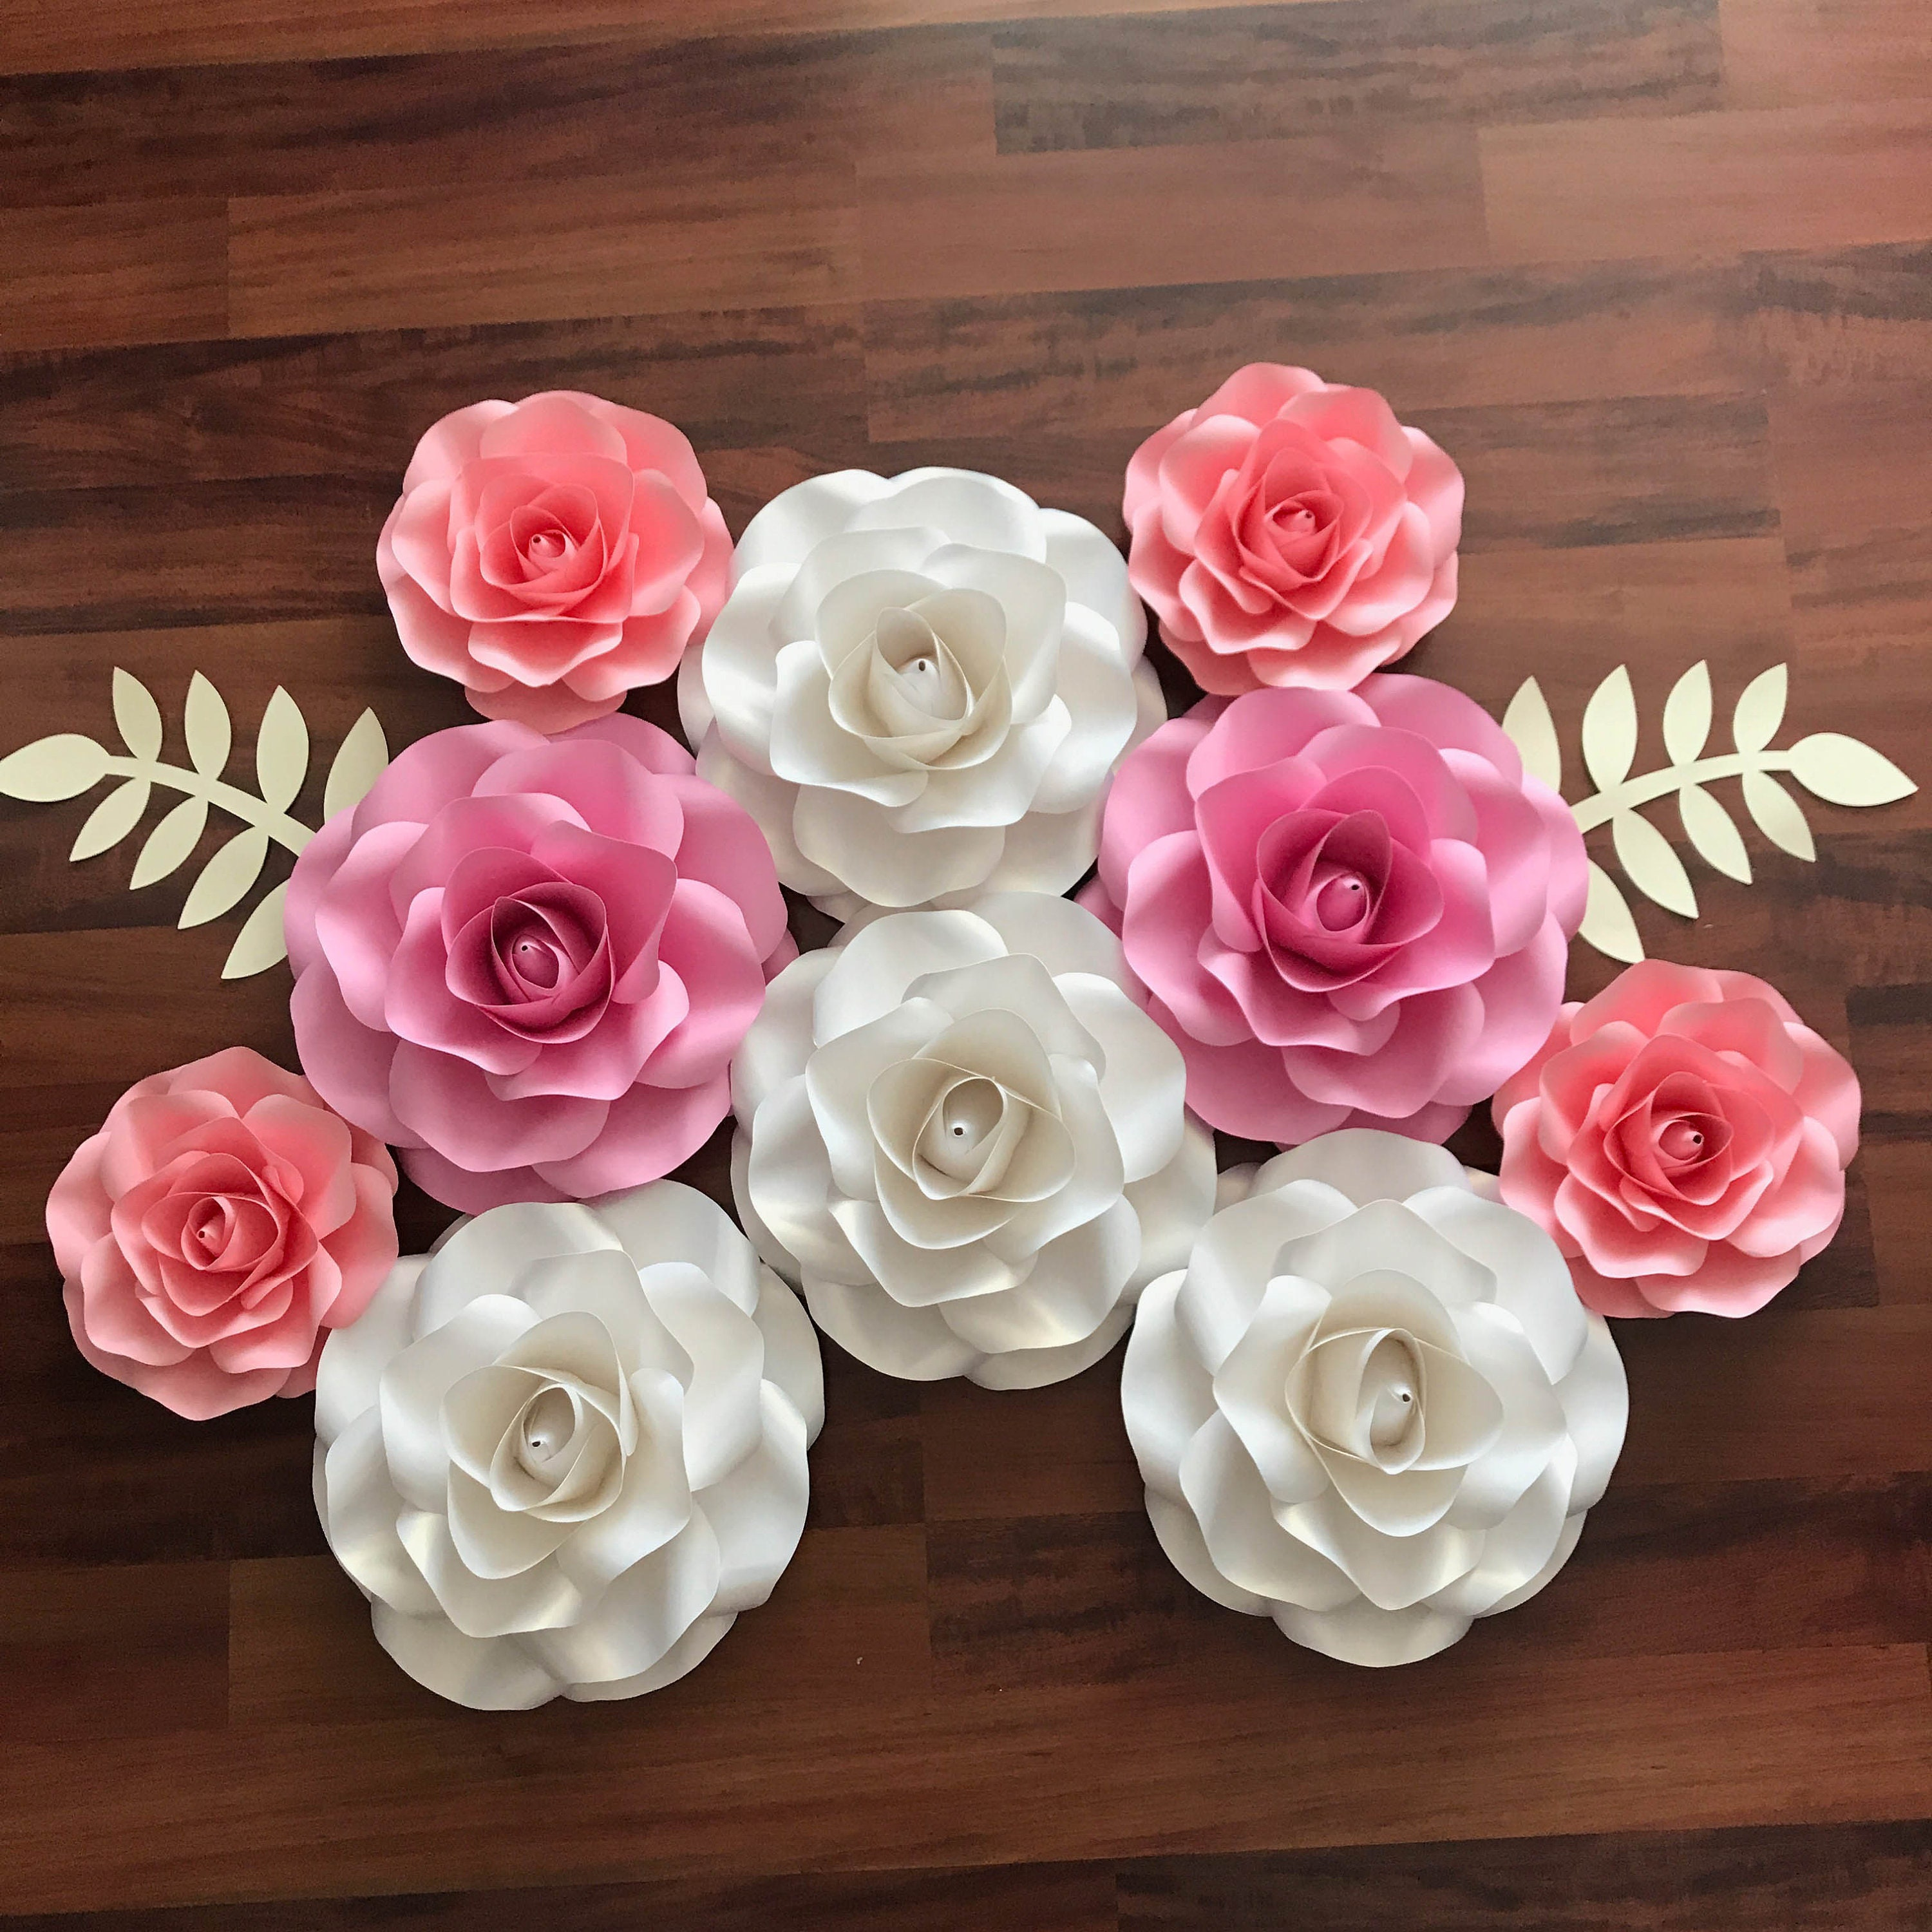 SVG COMBO of Small and Mini Rose Paper Flower Template DIY ...